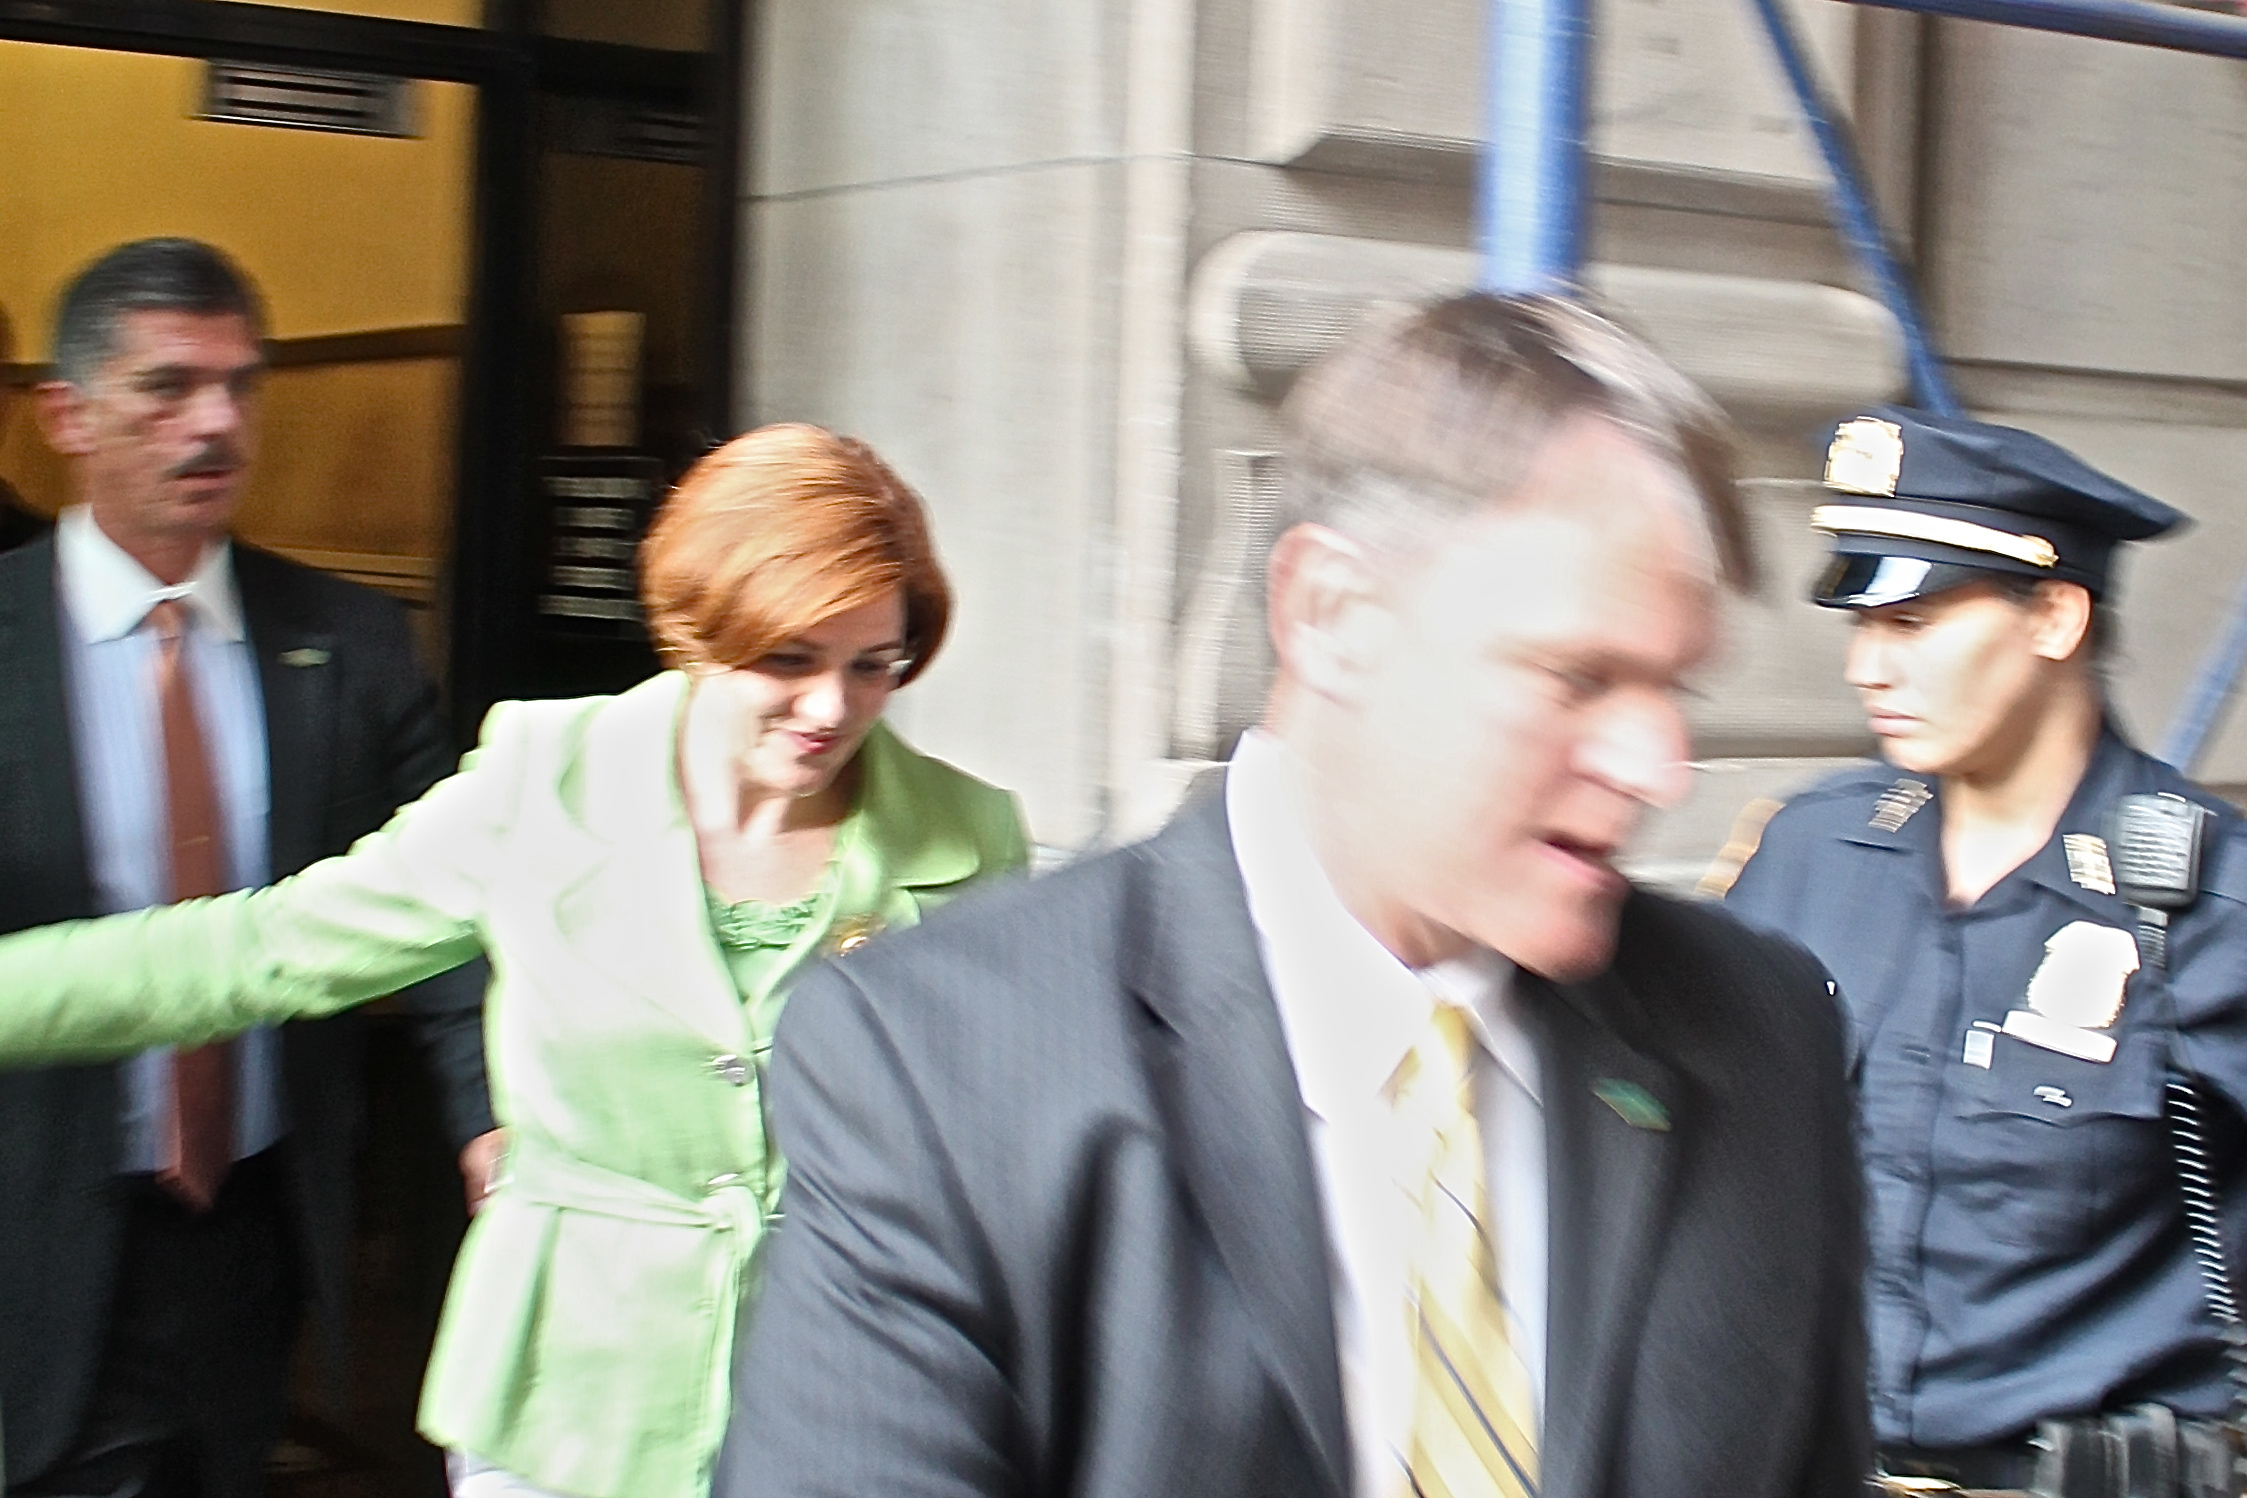 Former New York City Council Speaker  Christine Quinn  (D-Cheslea), exiting a fundraiser for her failed 2013 campaign for New York City mayor. Source : Louis Flores/Progress Queens